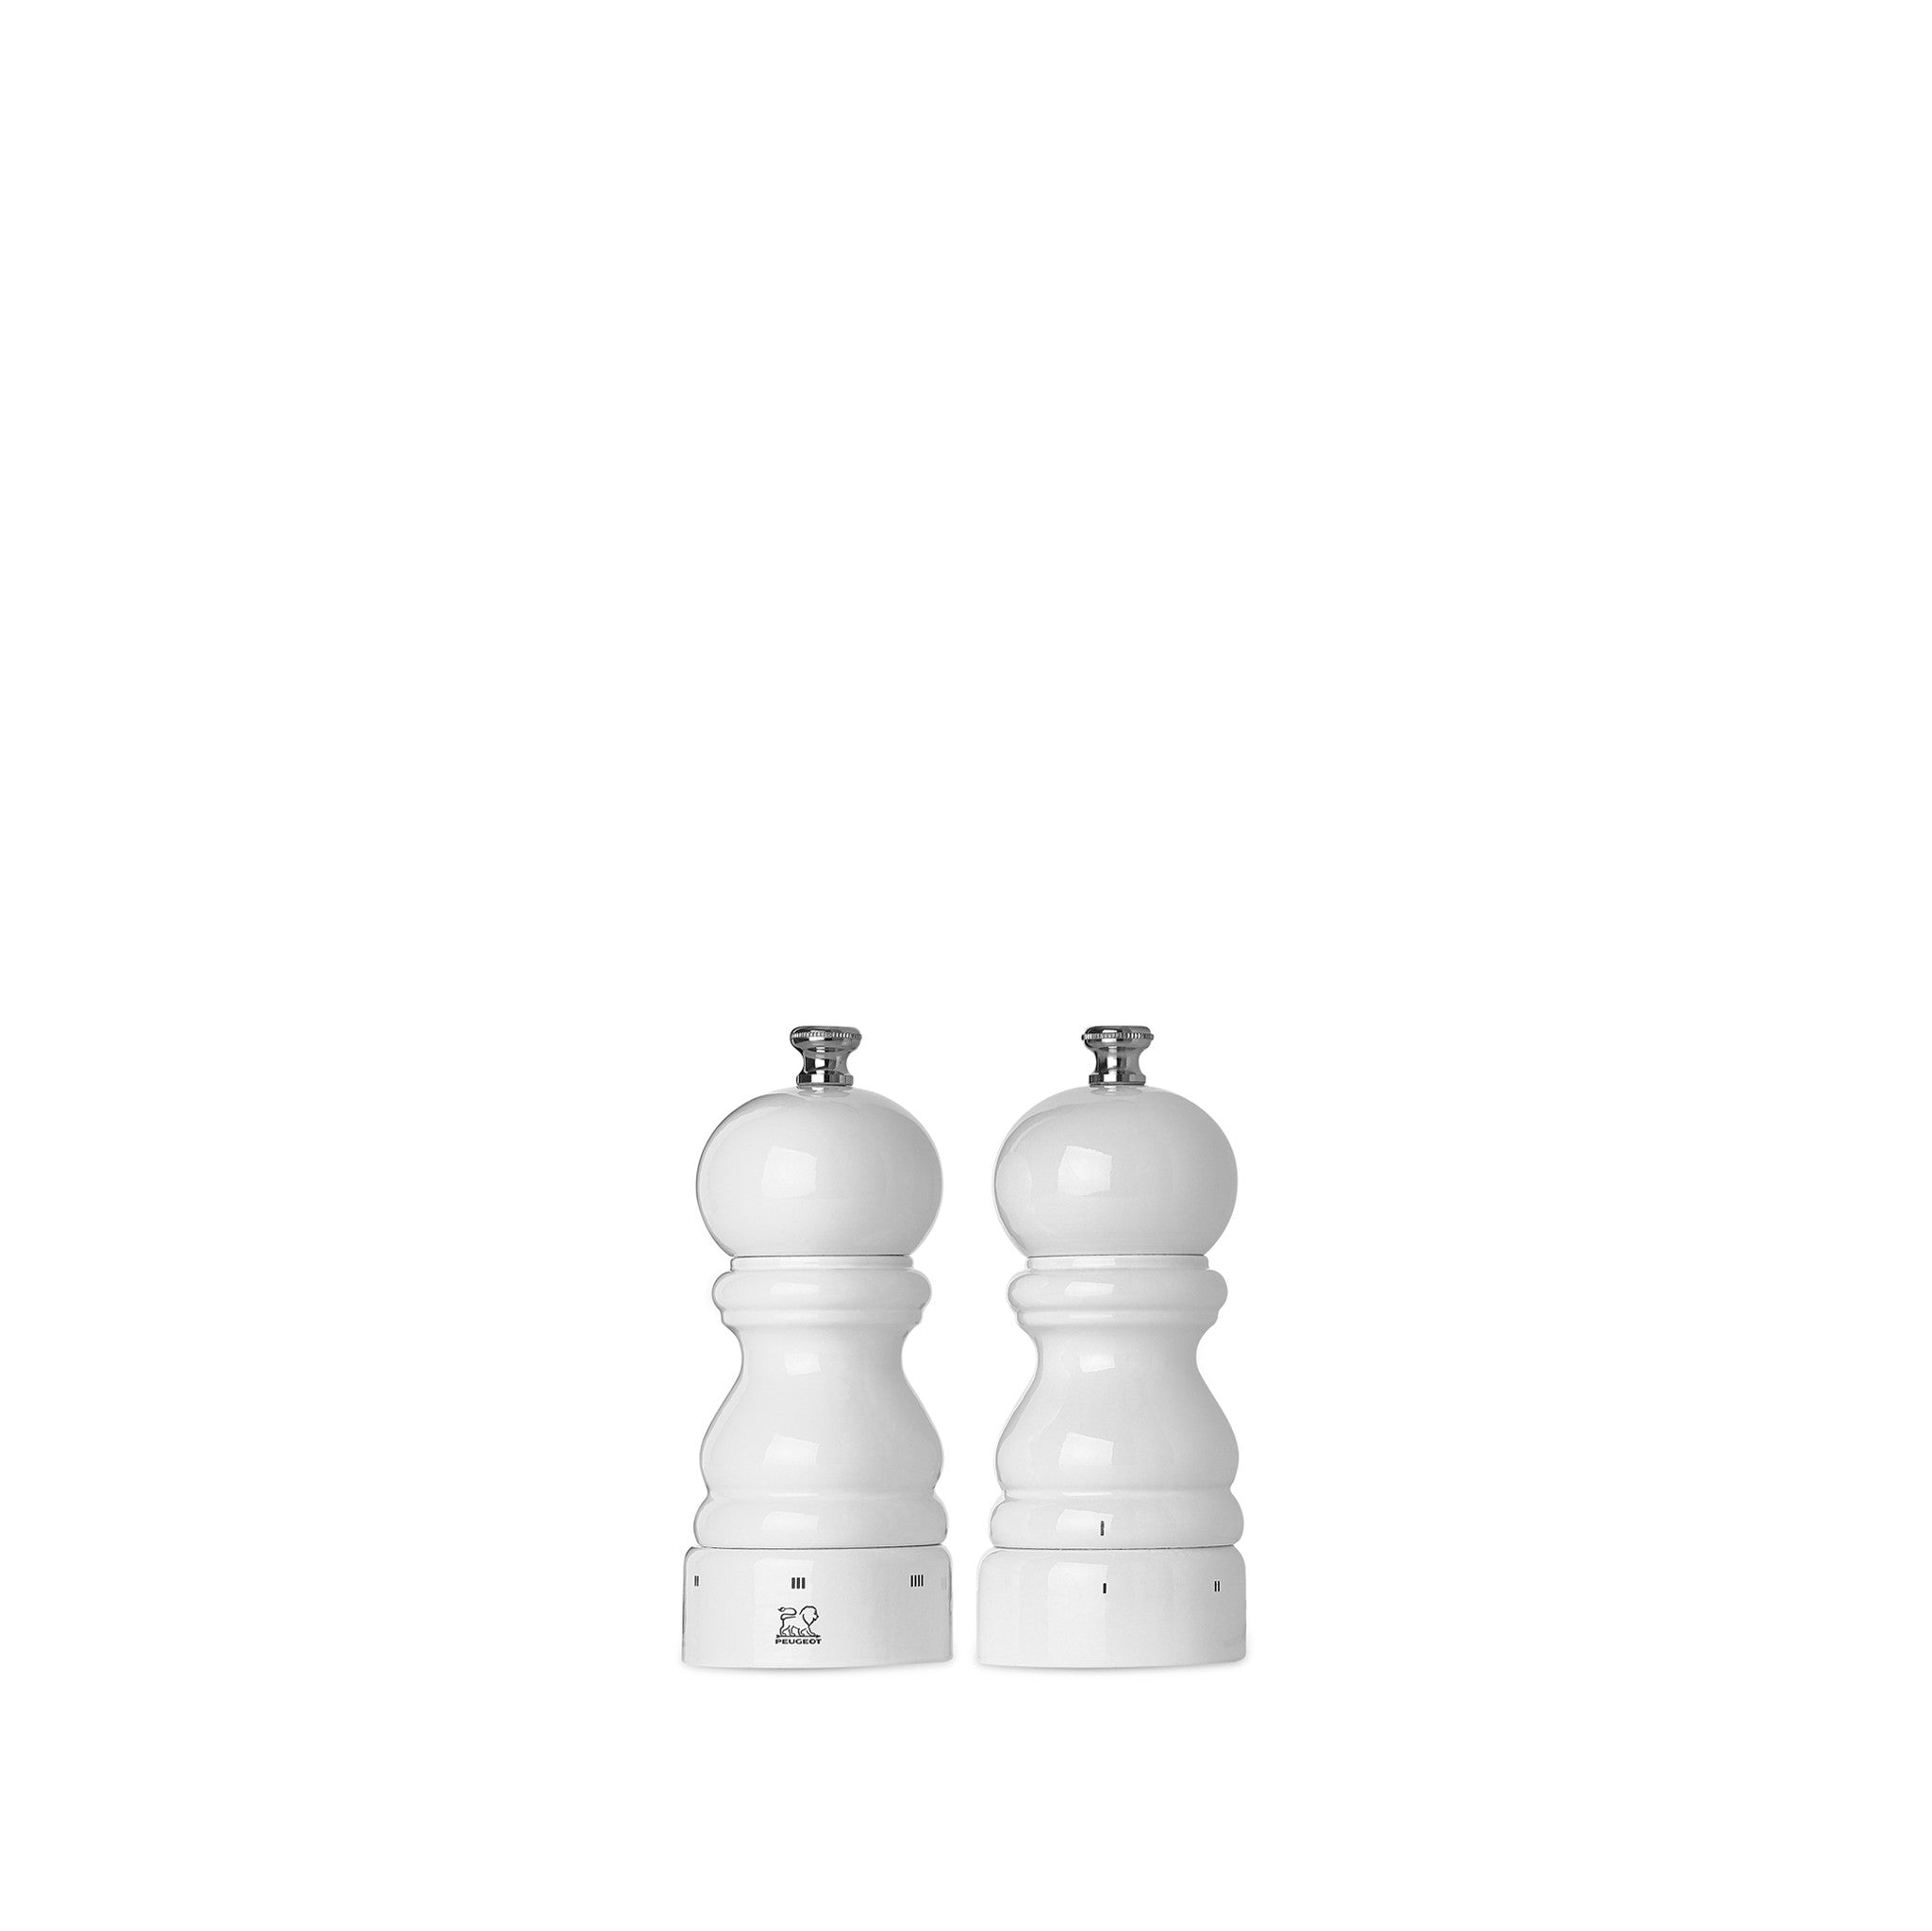 Peugeot Paris White Lacquered Salt & Pepper Mill, 12cm